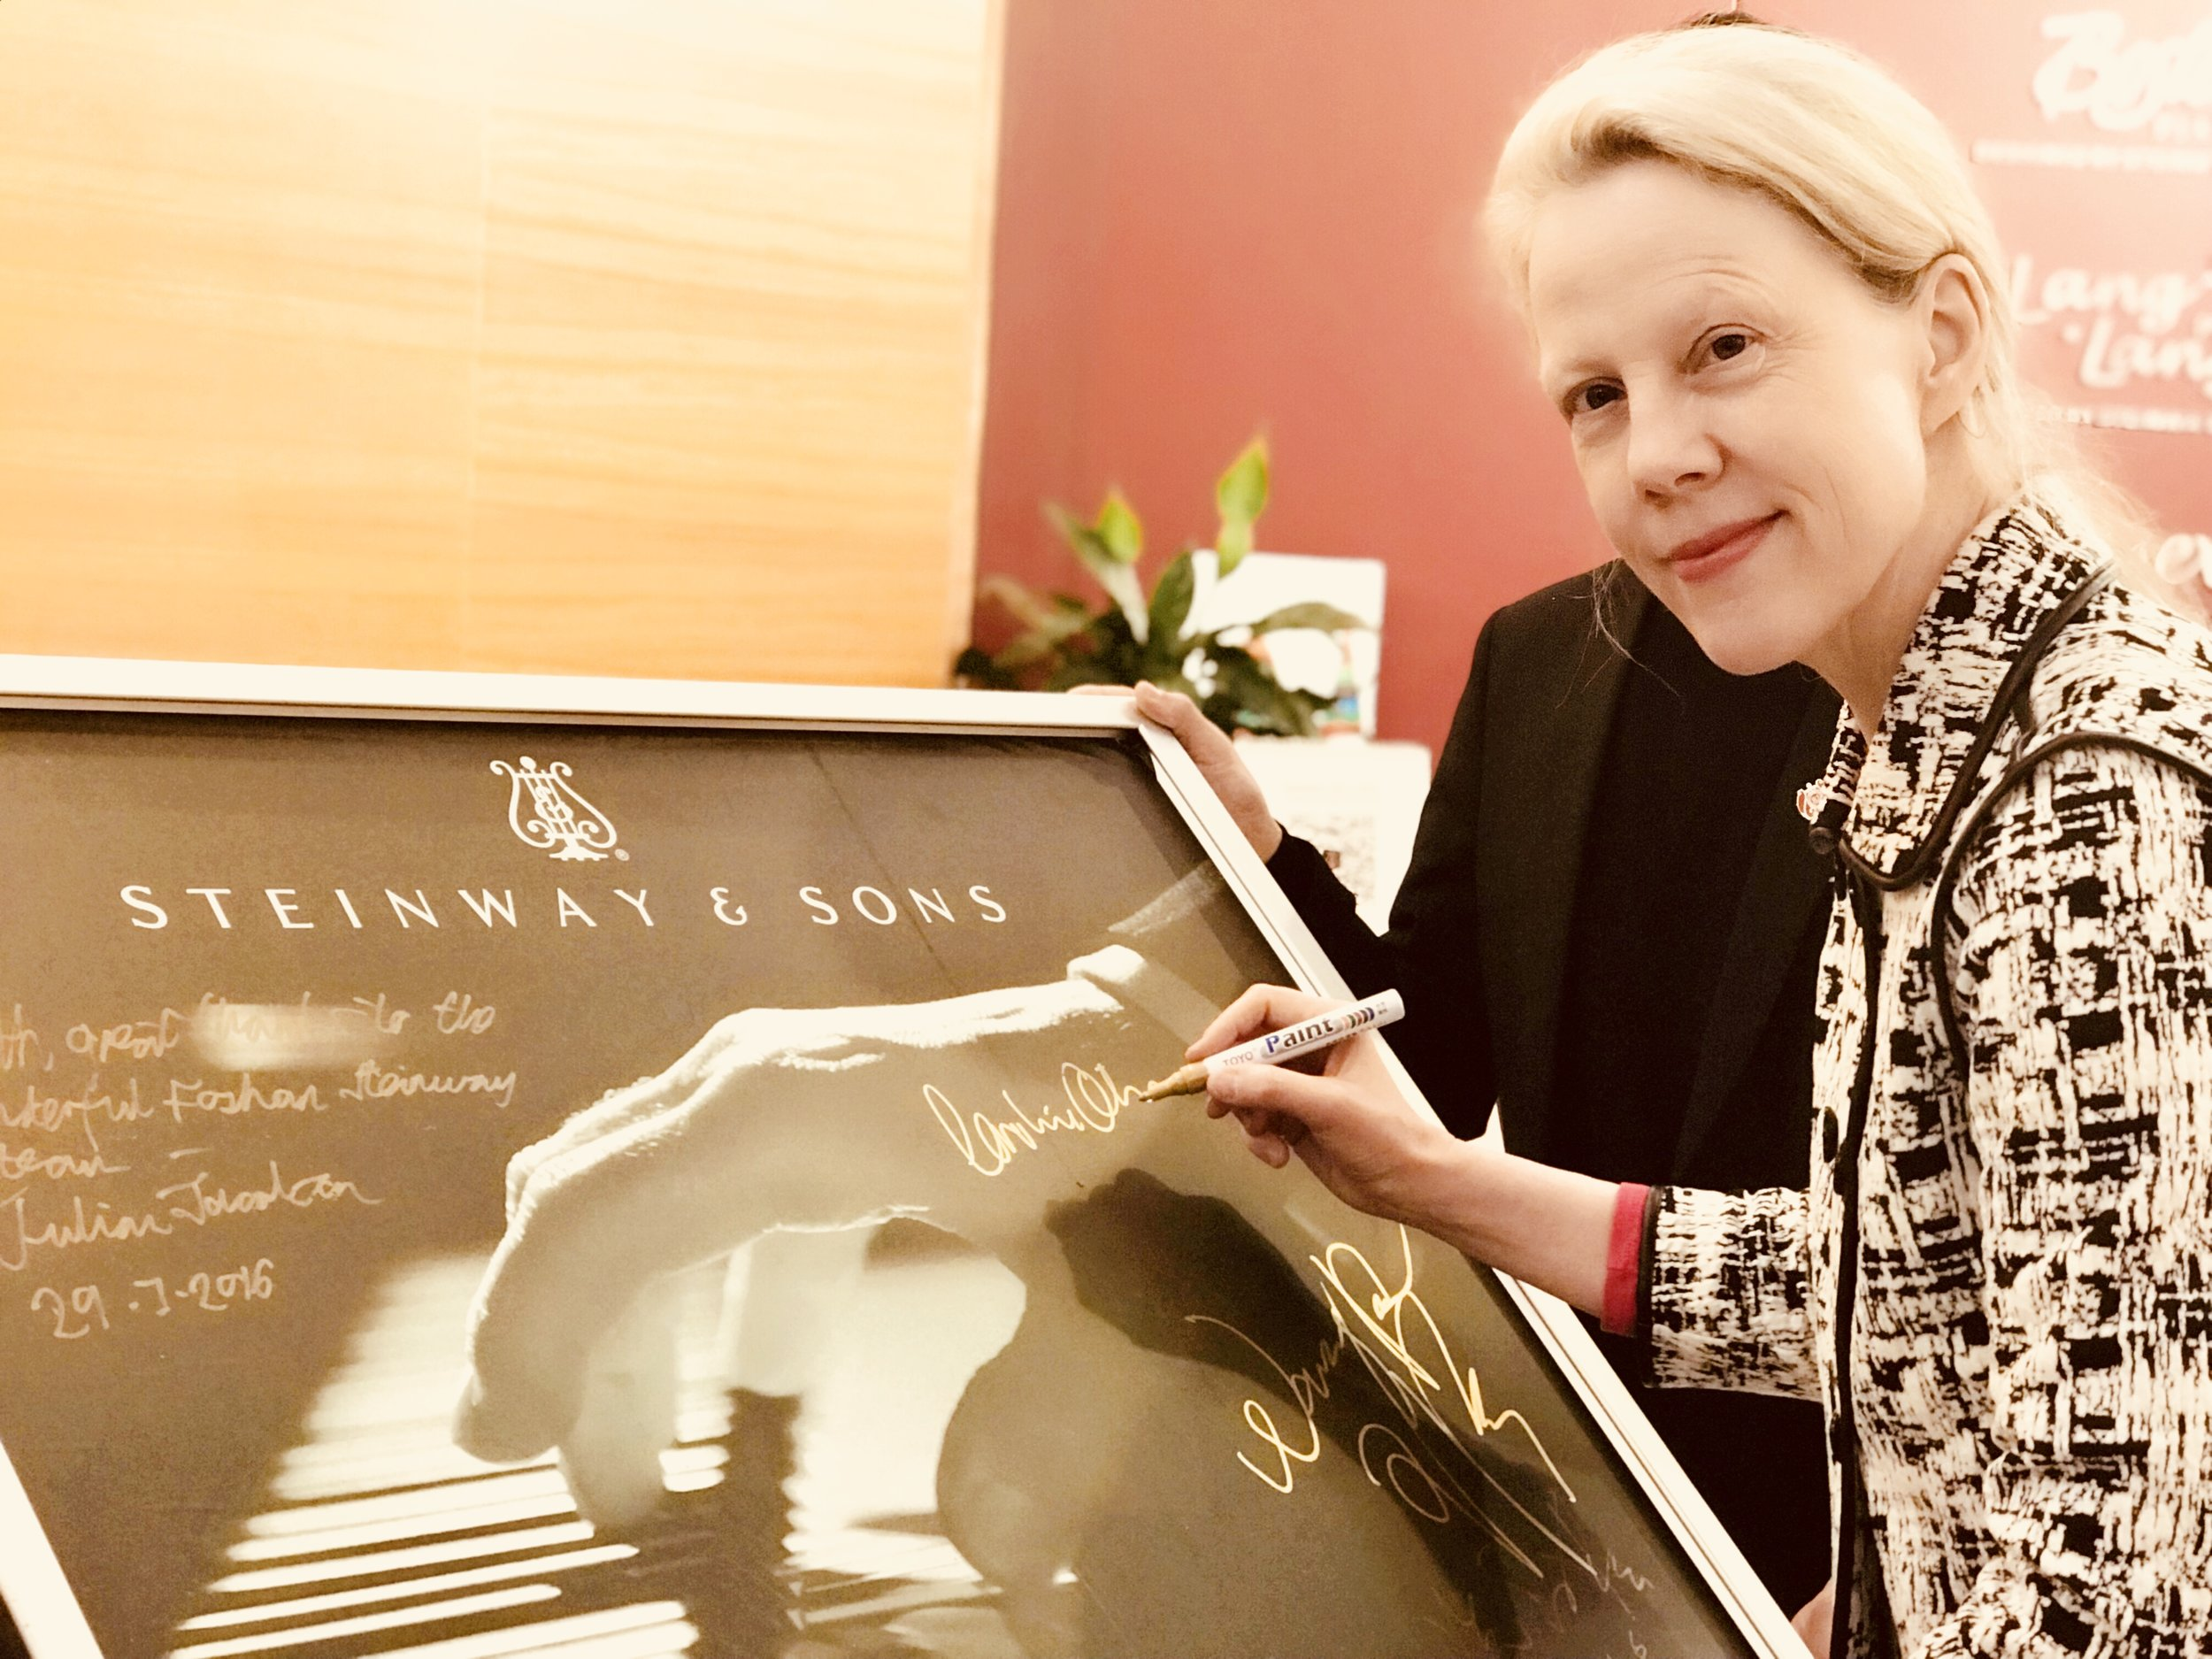 Signing at the Steinway Gallery in Foshan, China